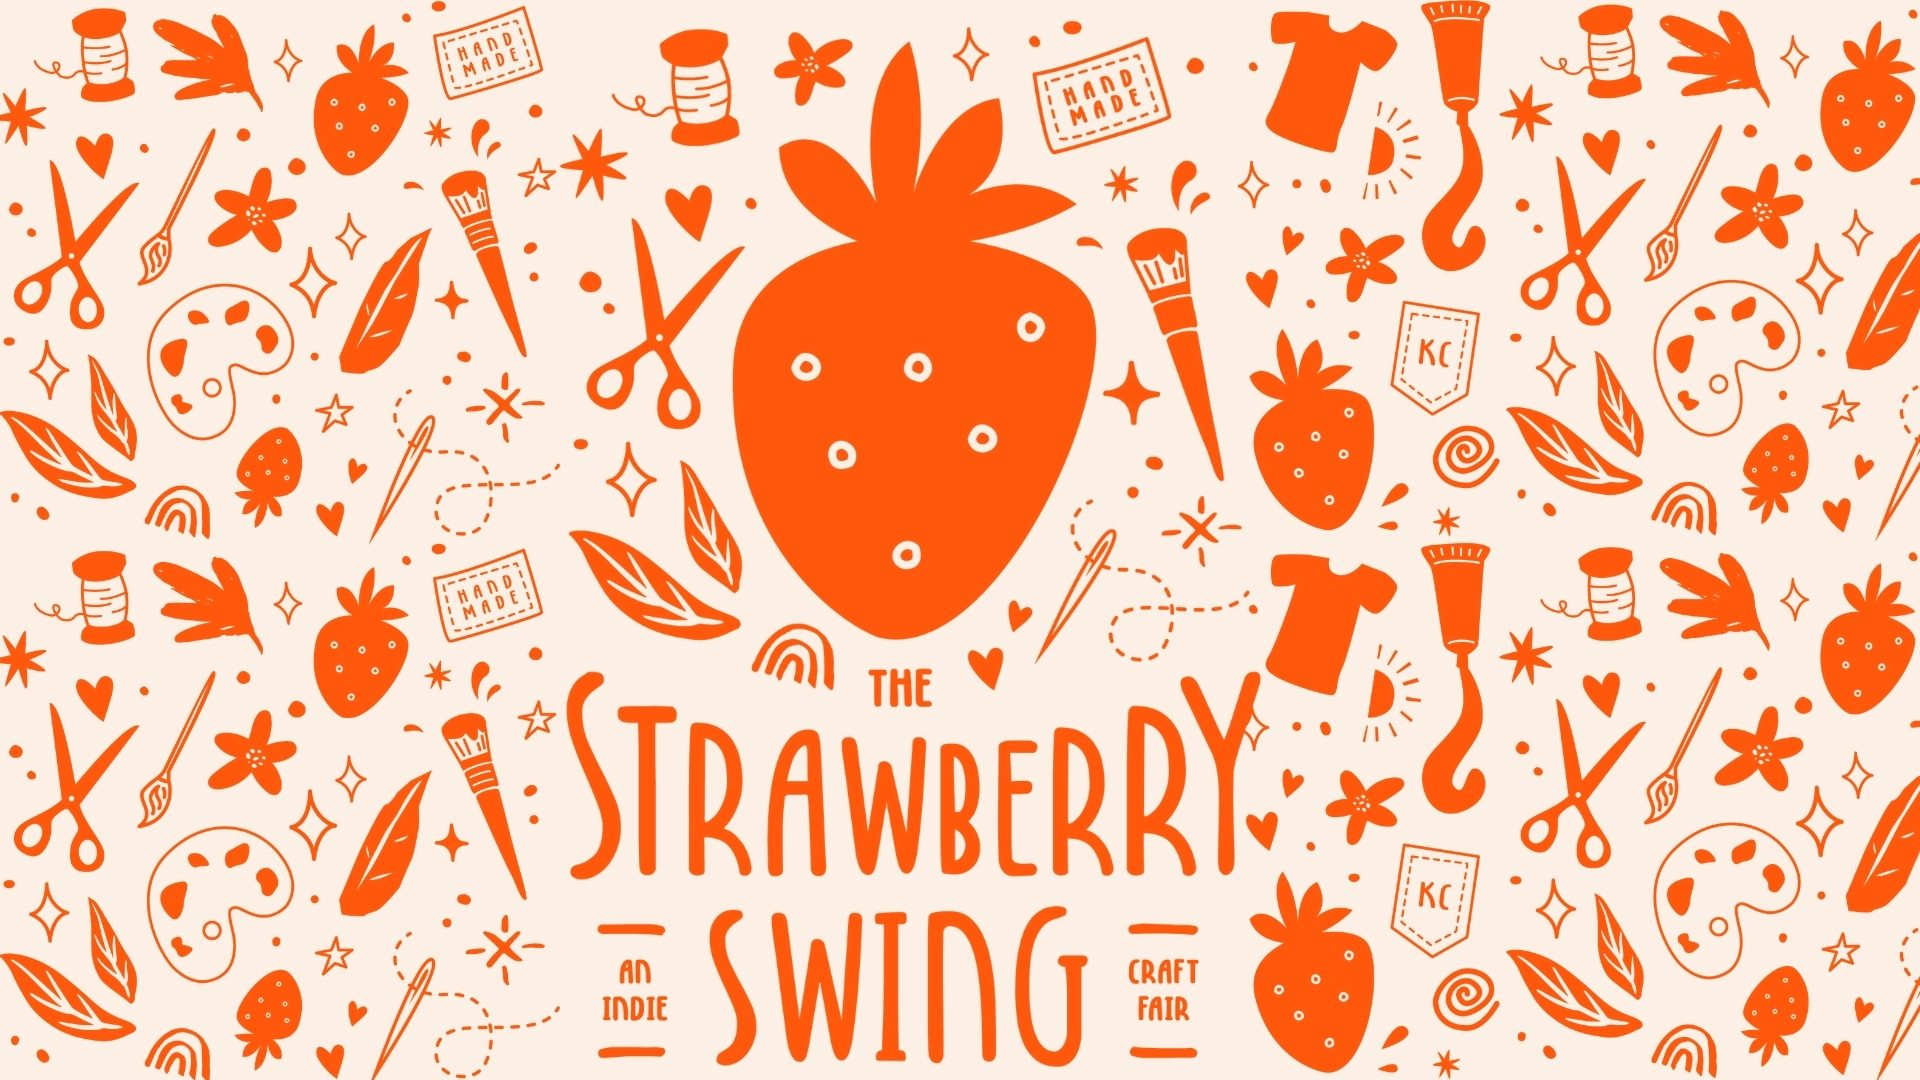 The Strawberry Swing